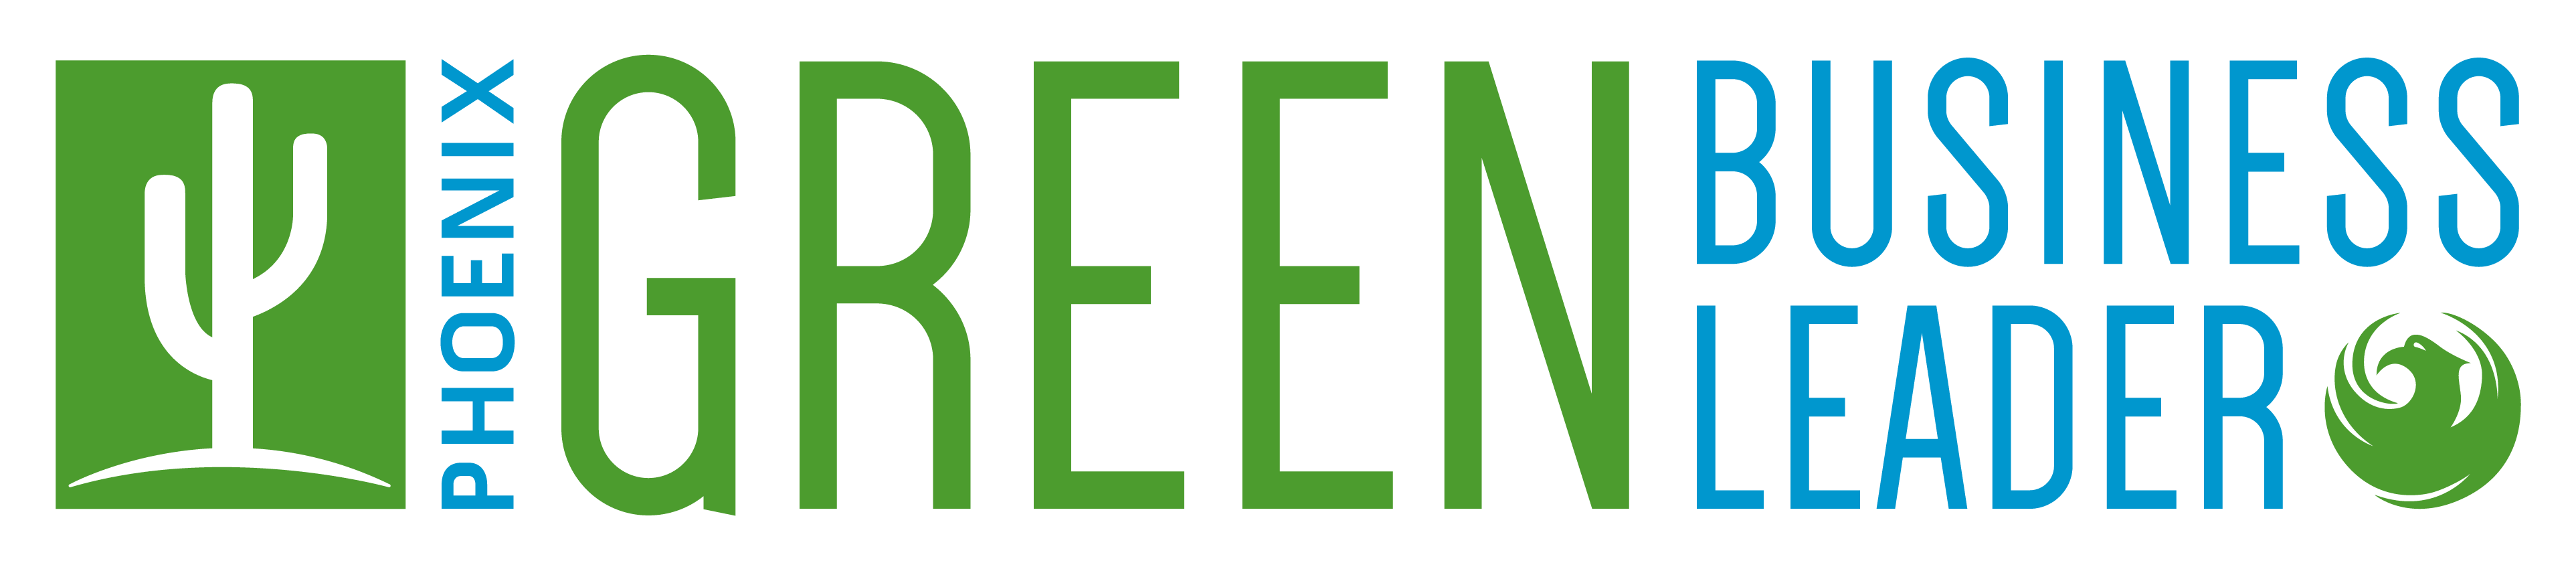 Green Business Logo